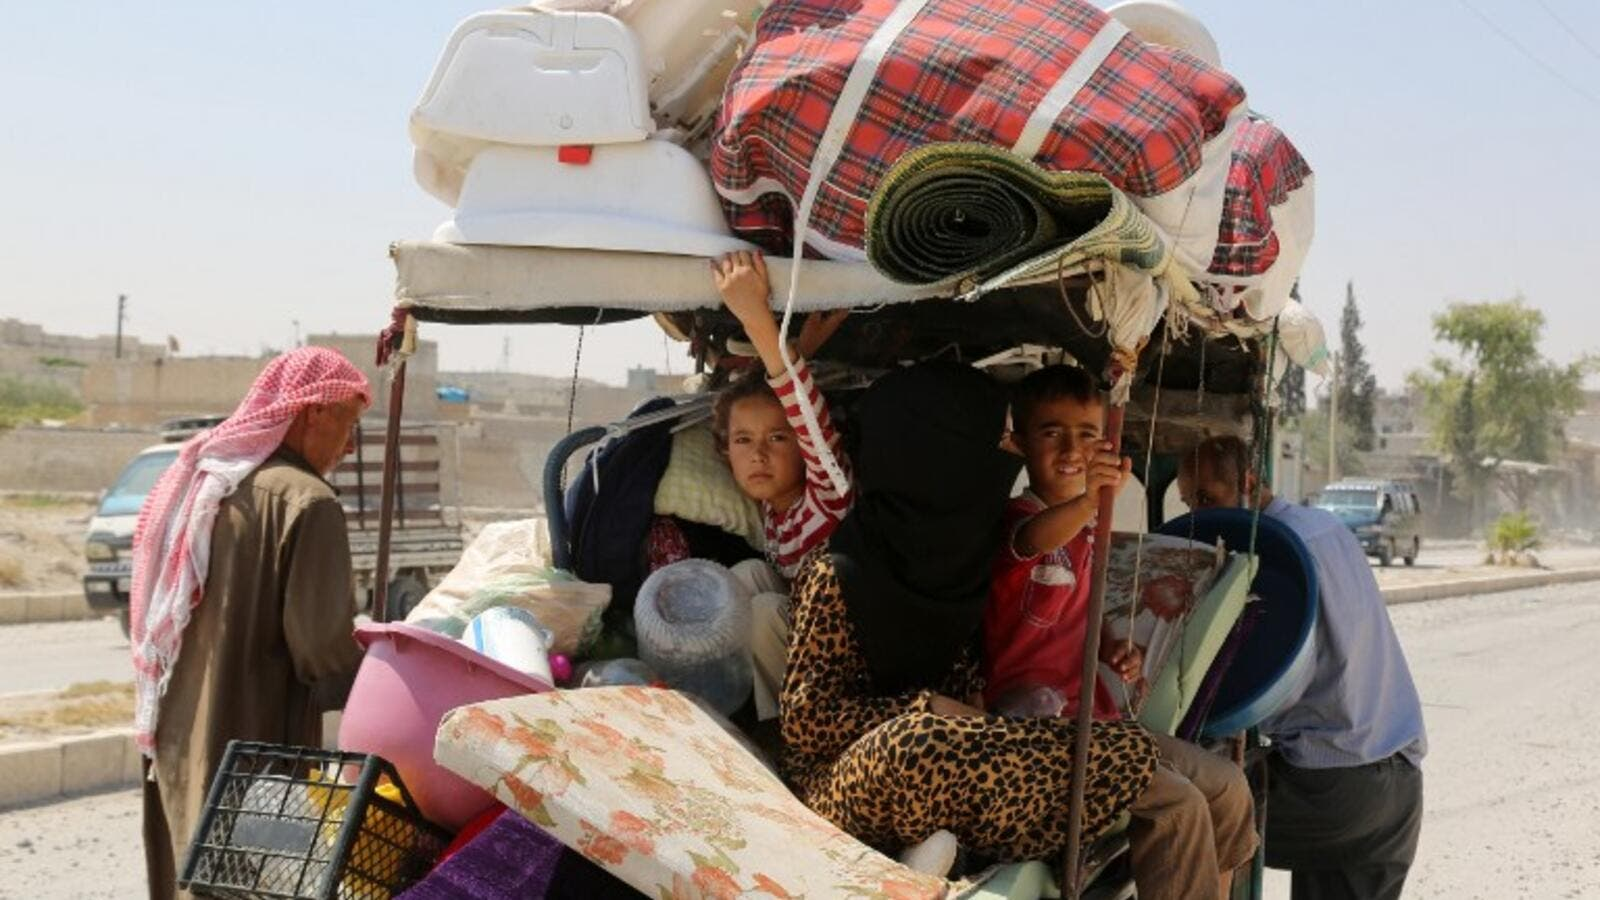 Syrian children sit in a cart, loaded with belongings, in the northern Syrian town of Manbij as civilians go back to their homes on August 14, 2016 after the Arab-Kurdish alliance, known as the Syrian Democratic Forces (SDF), pushed Daesh out of the city. (AFP/Delil Souleiman)